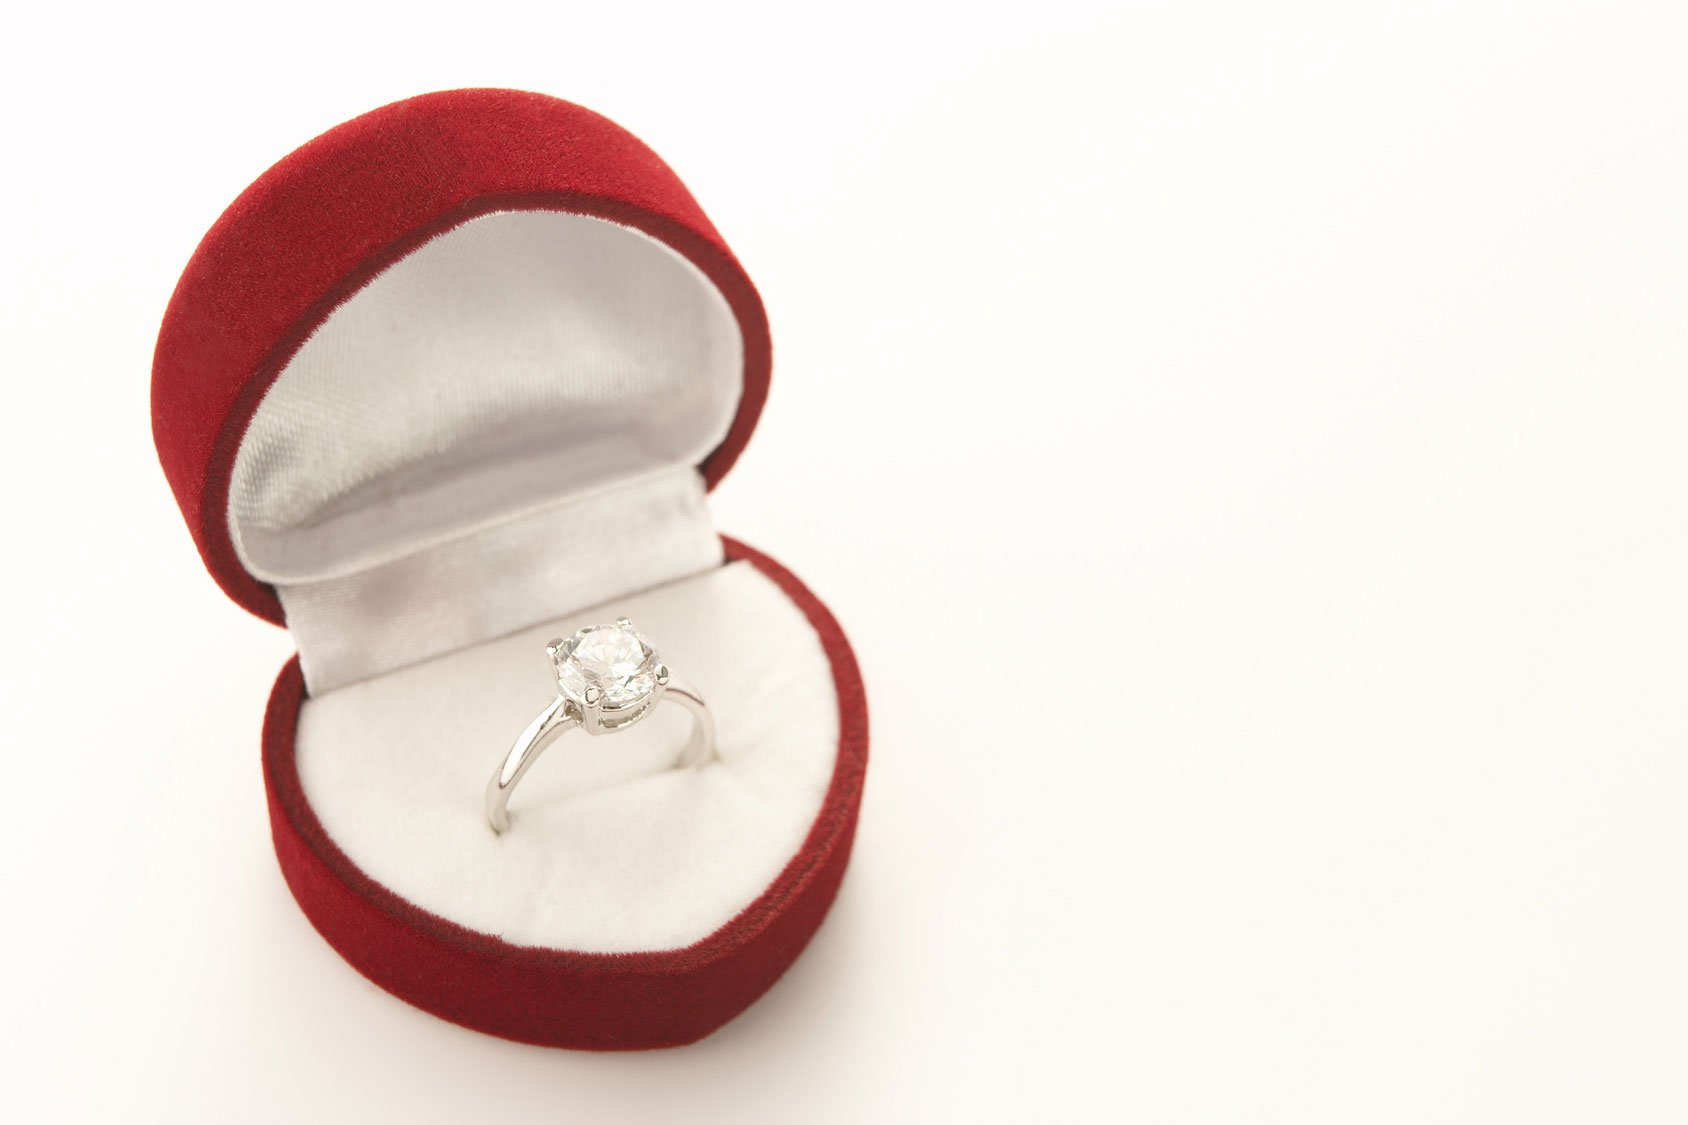 Newly Engaged? Make Sure Your Ring Is Covered With This